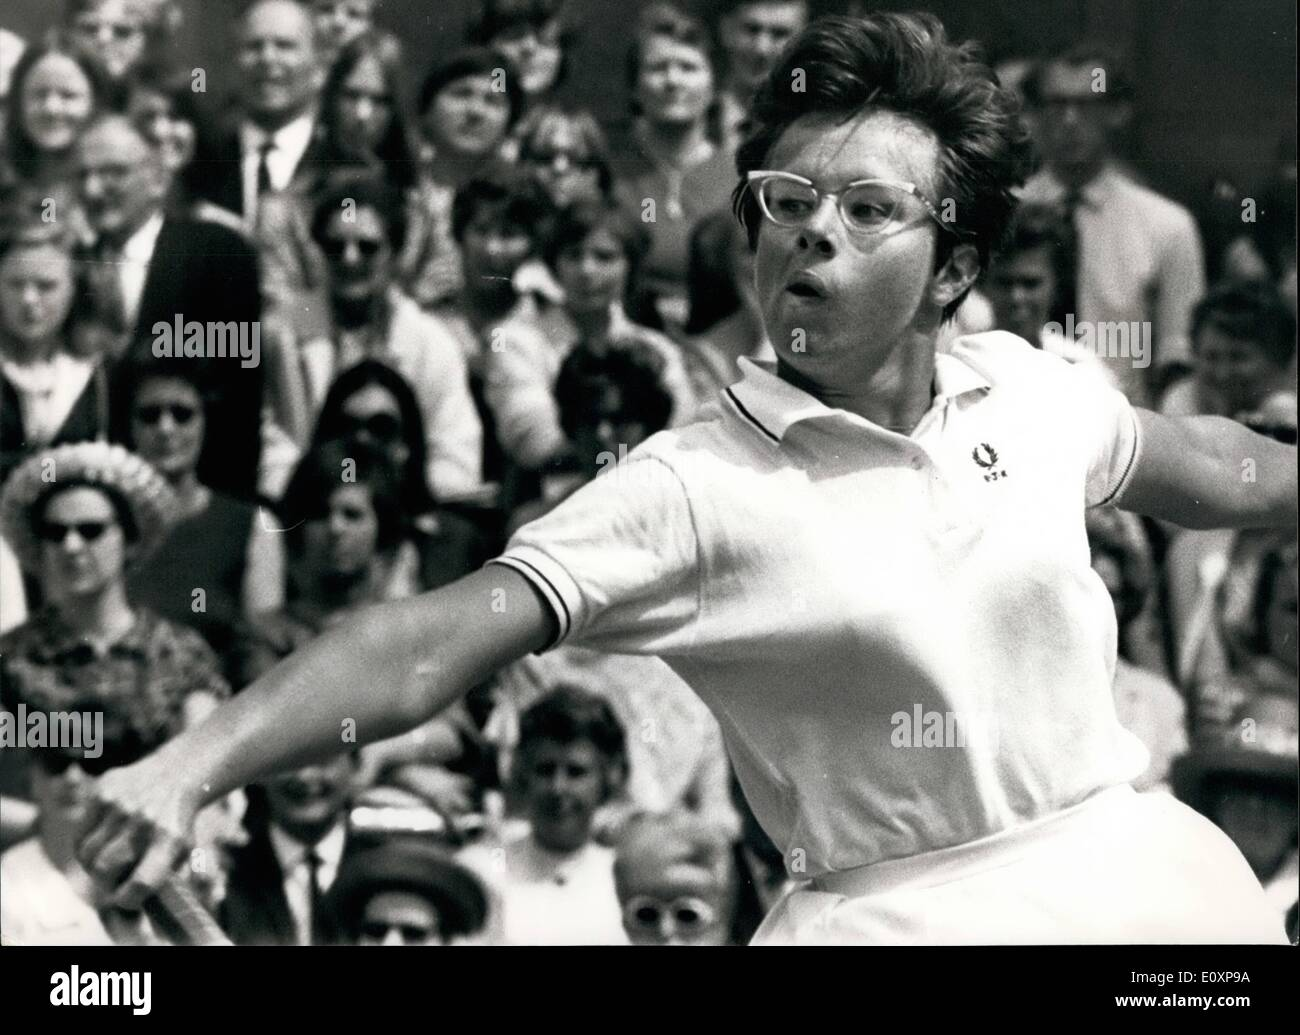 Jul 07 1967 Tennis at Wimbledon Virginia Wade beaten